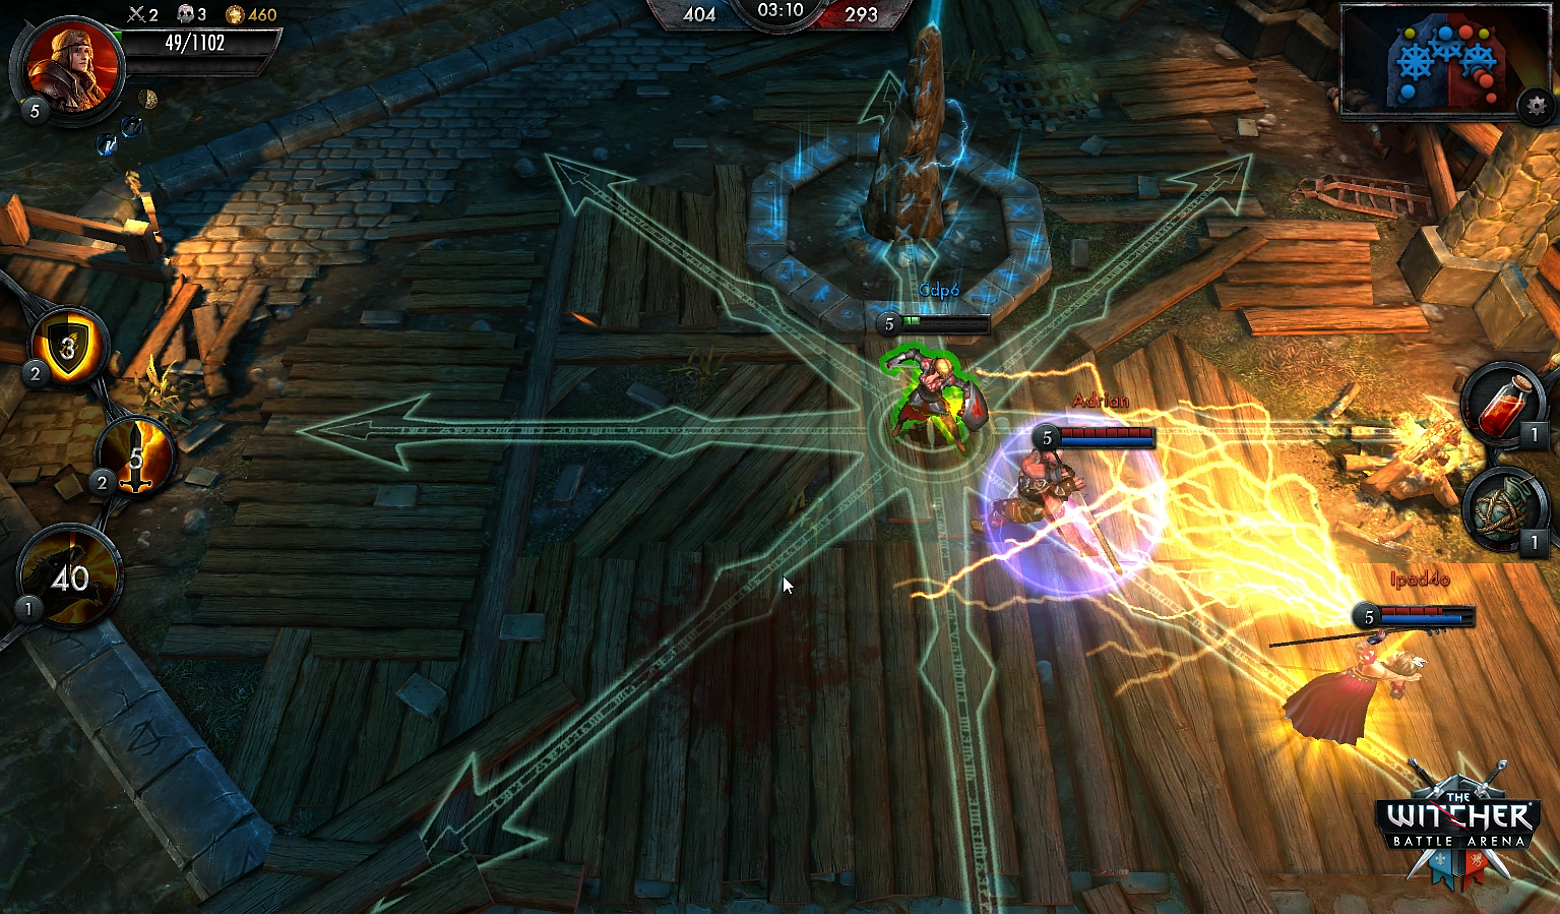 The Witcher's First MOBA, Battle Arena, Released Worldwide